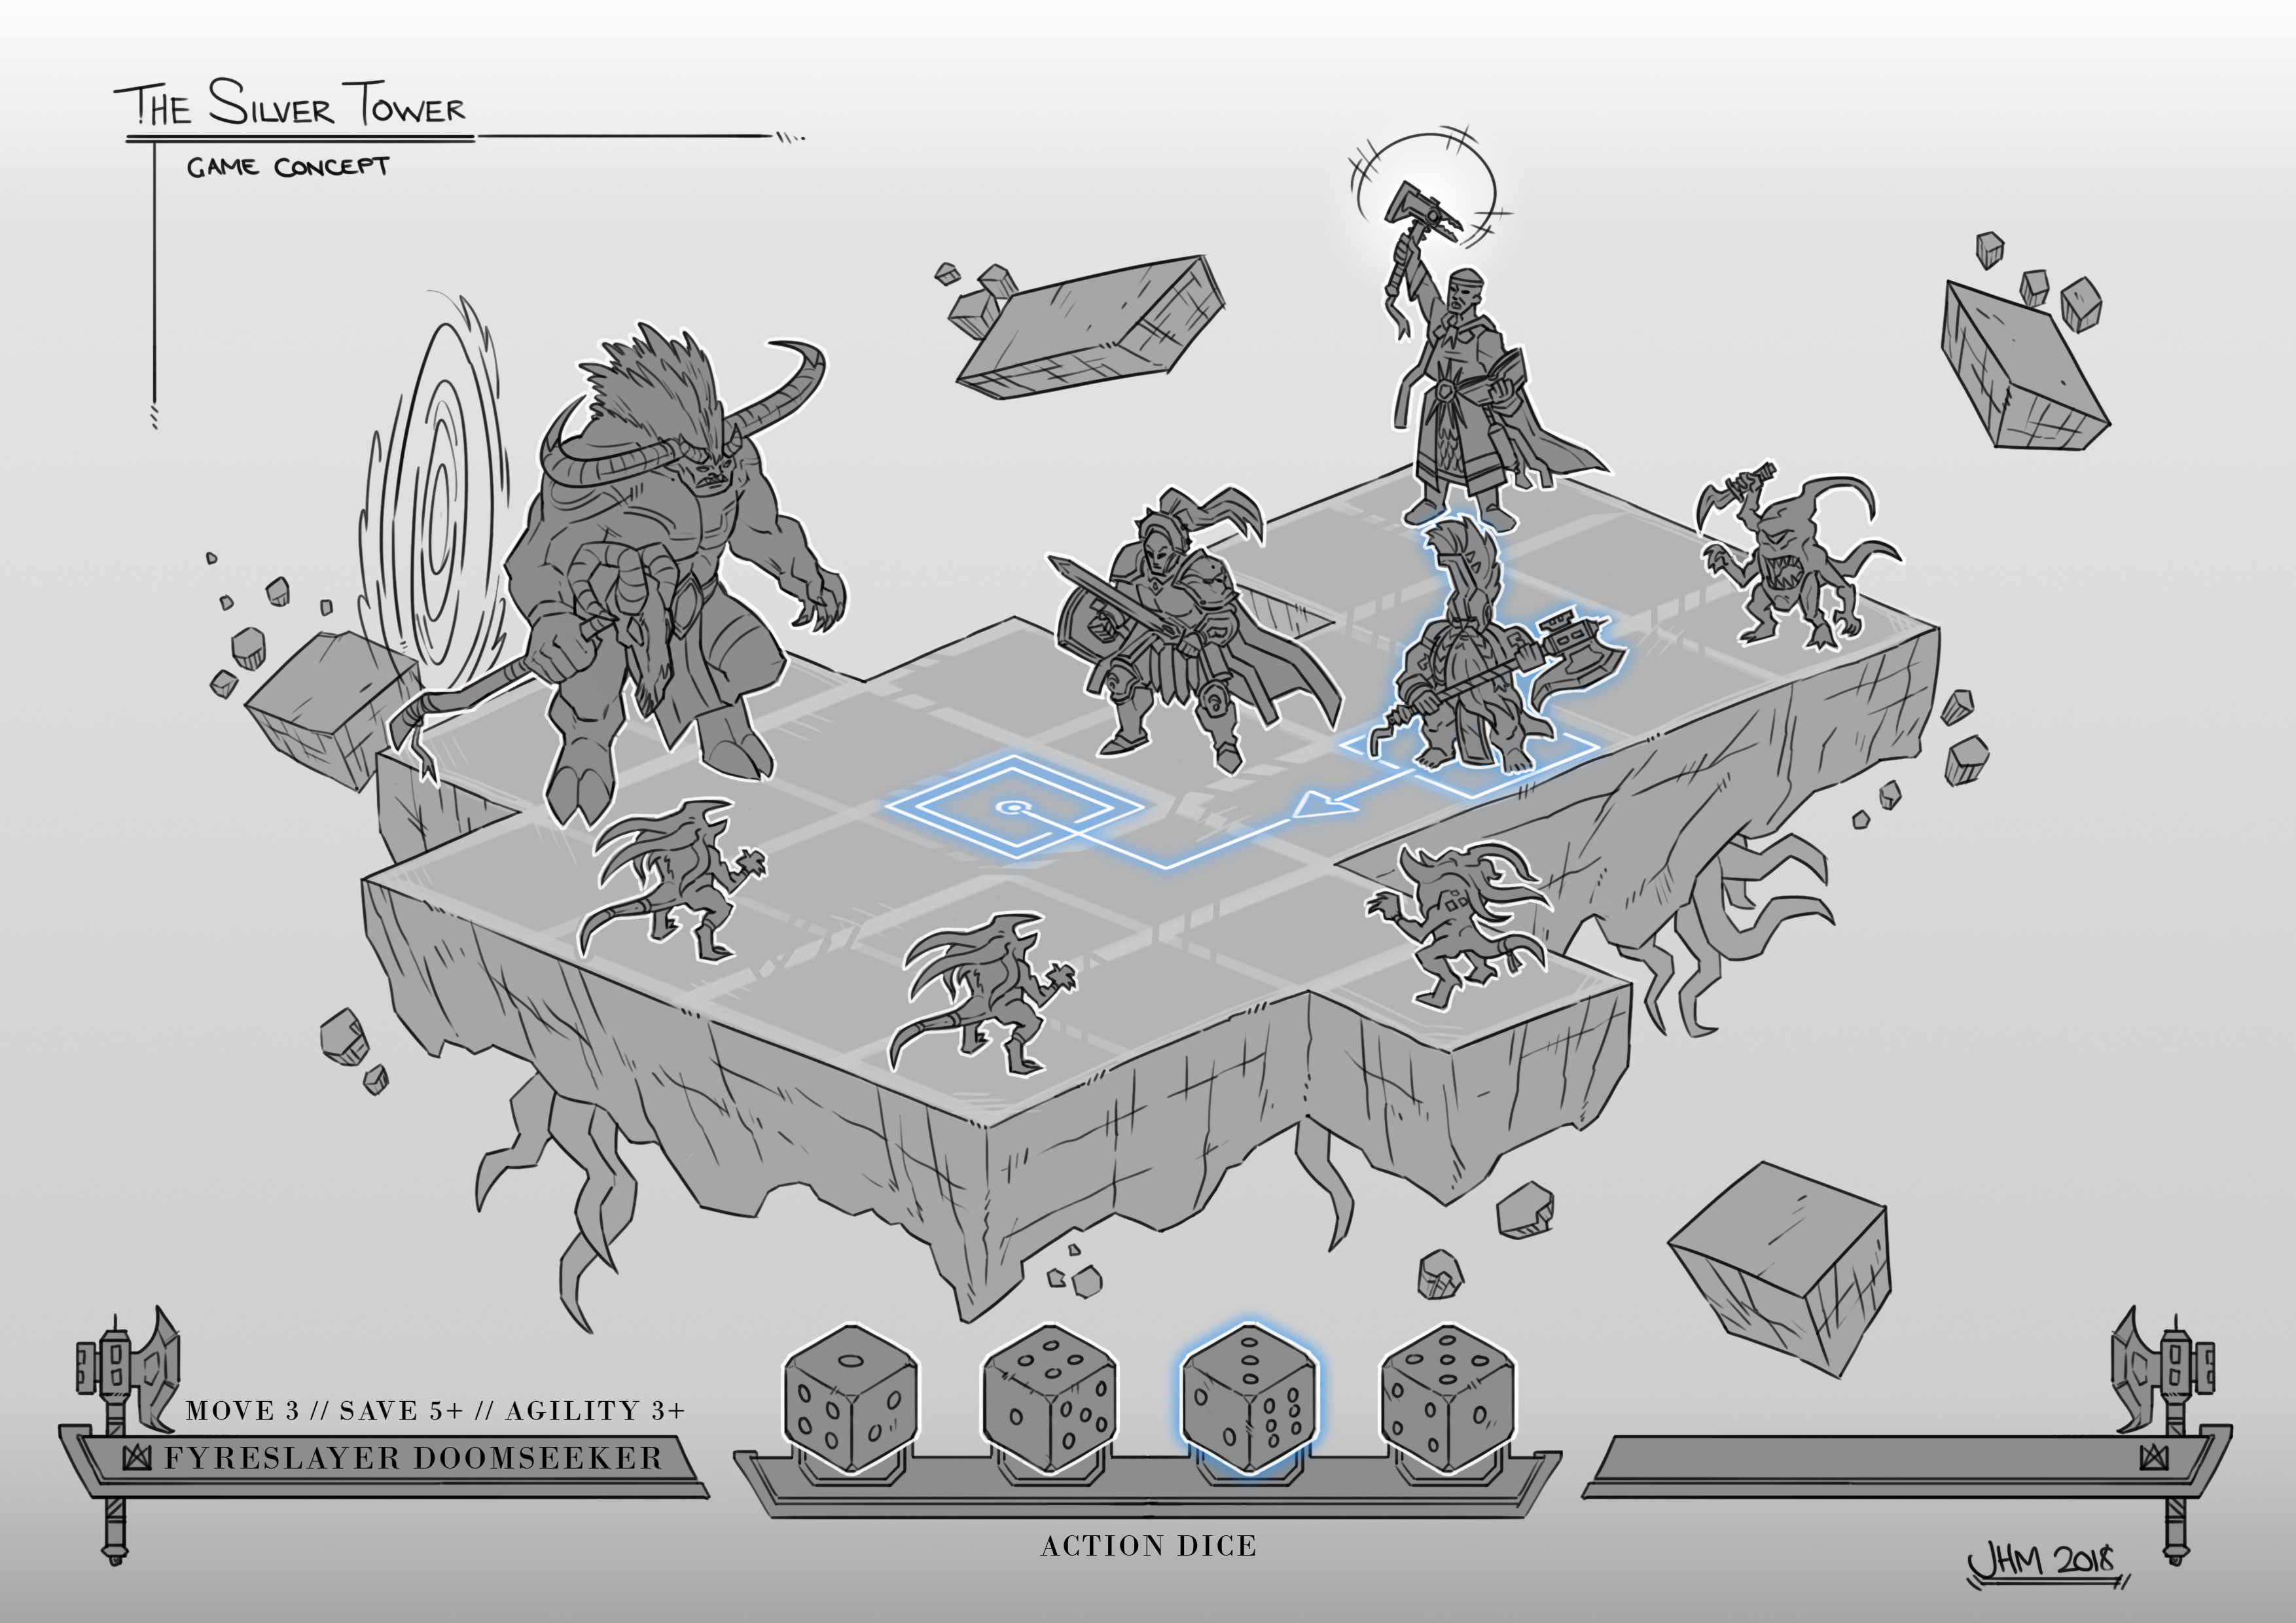 The Silver Tower - Game Concept